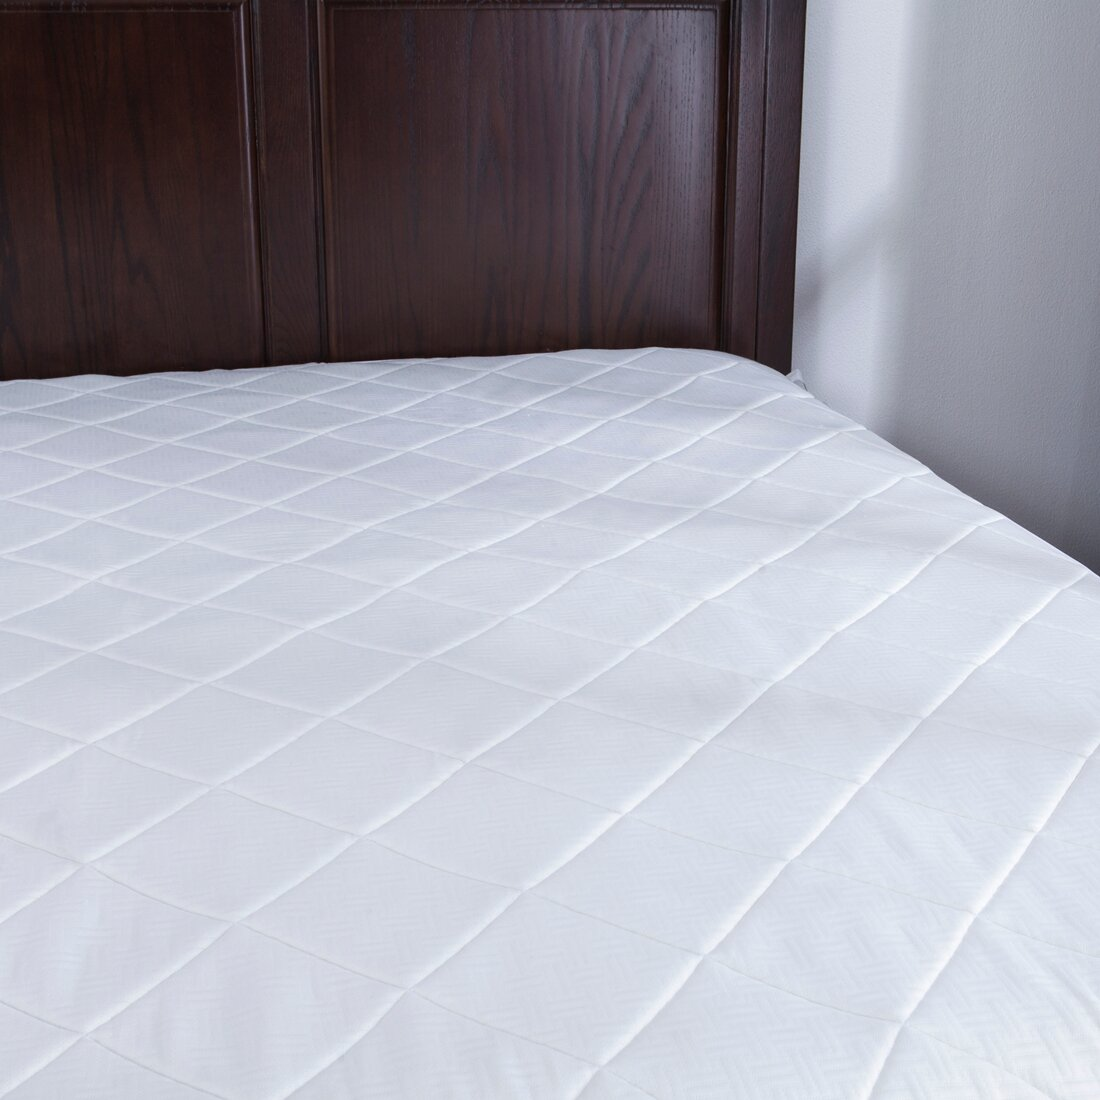 Puredown Memory Foam Mattress Pad Wayfair